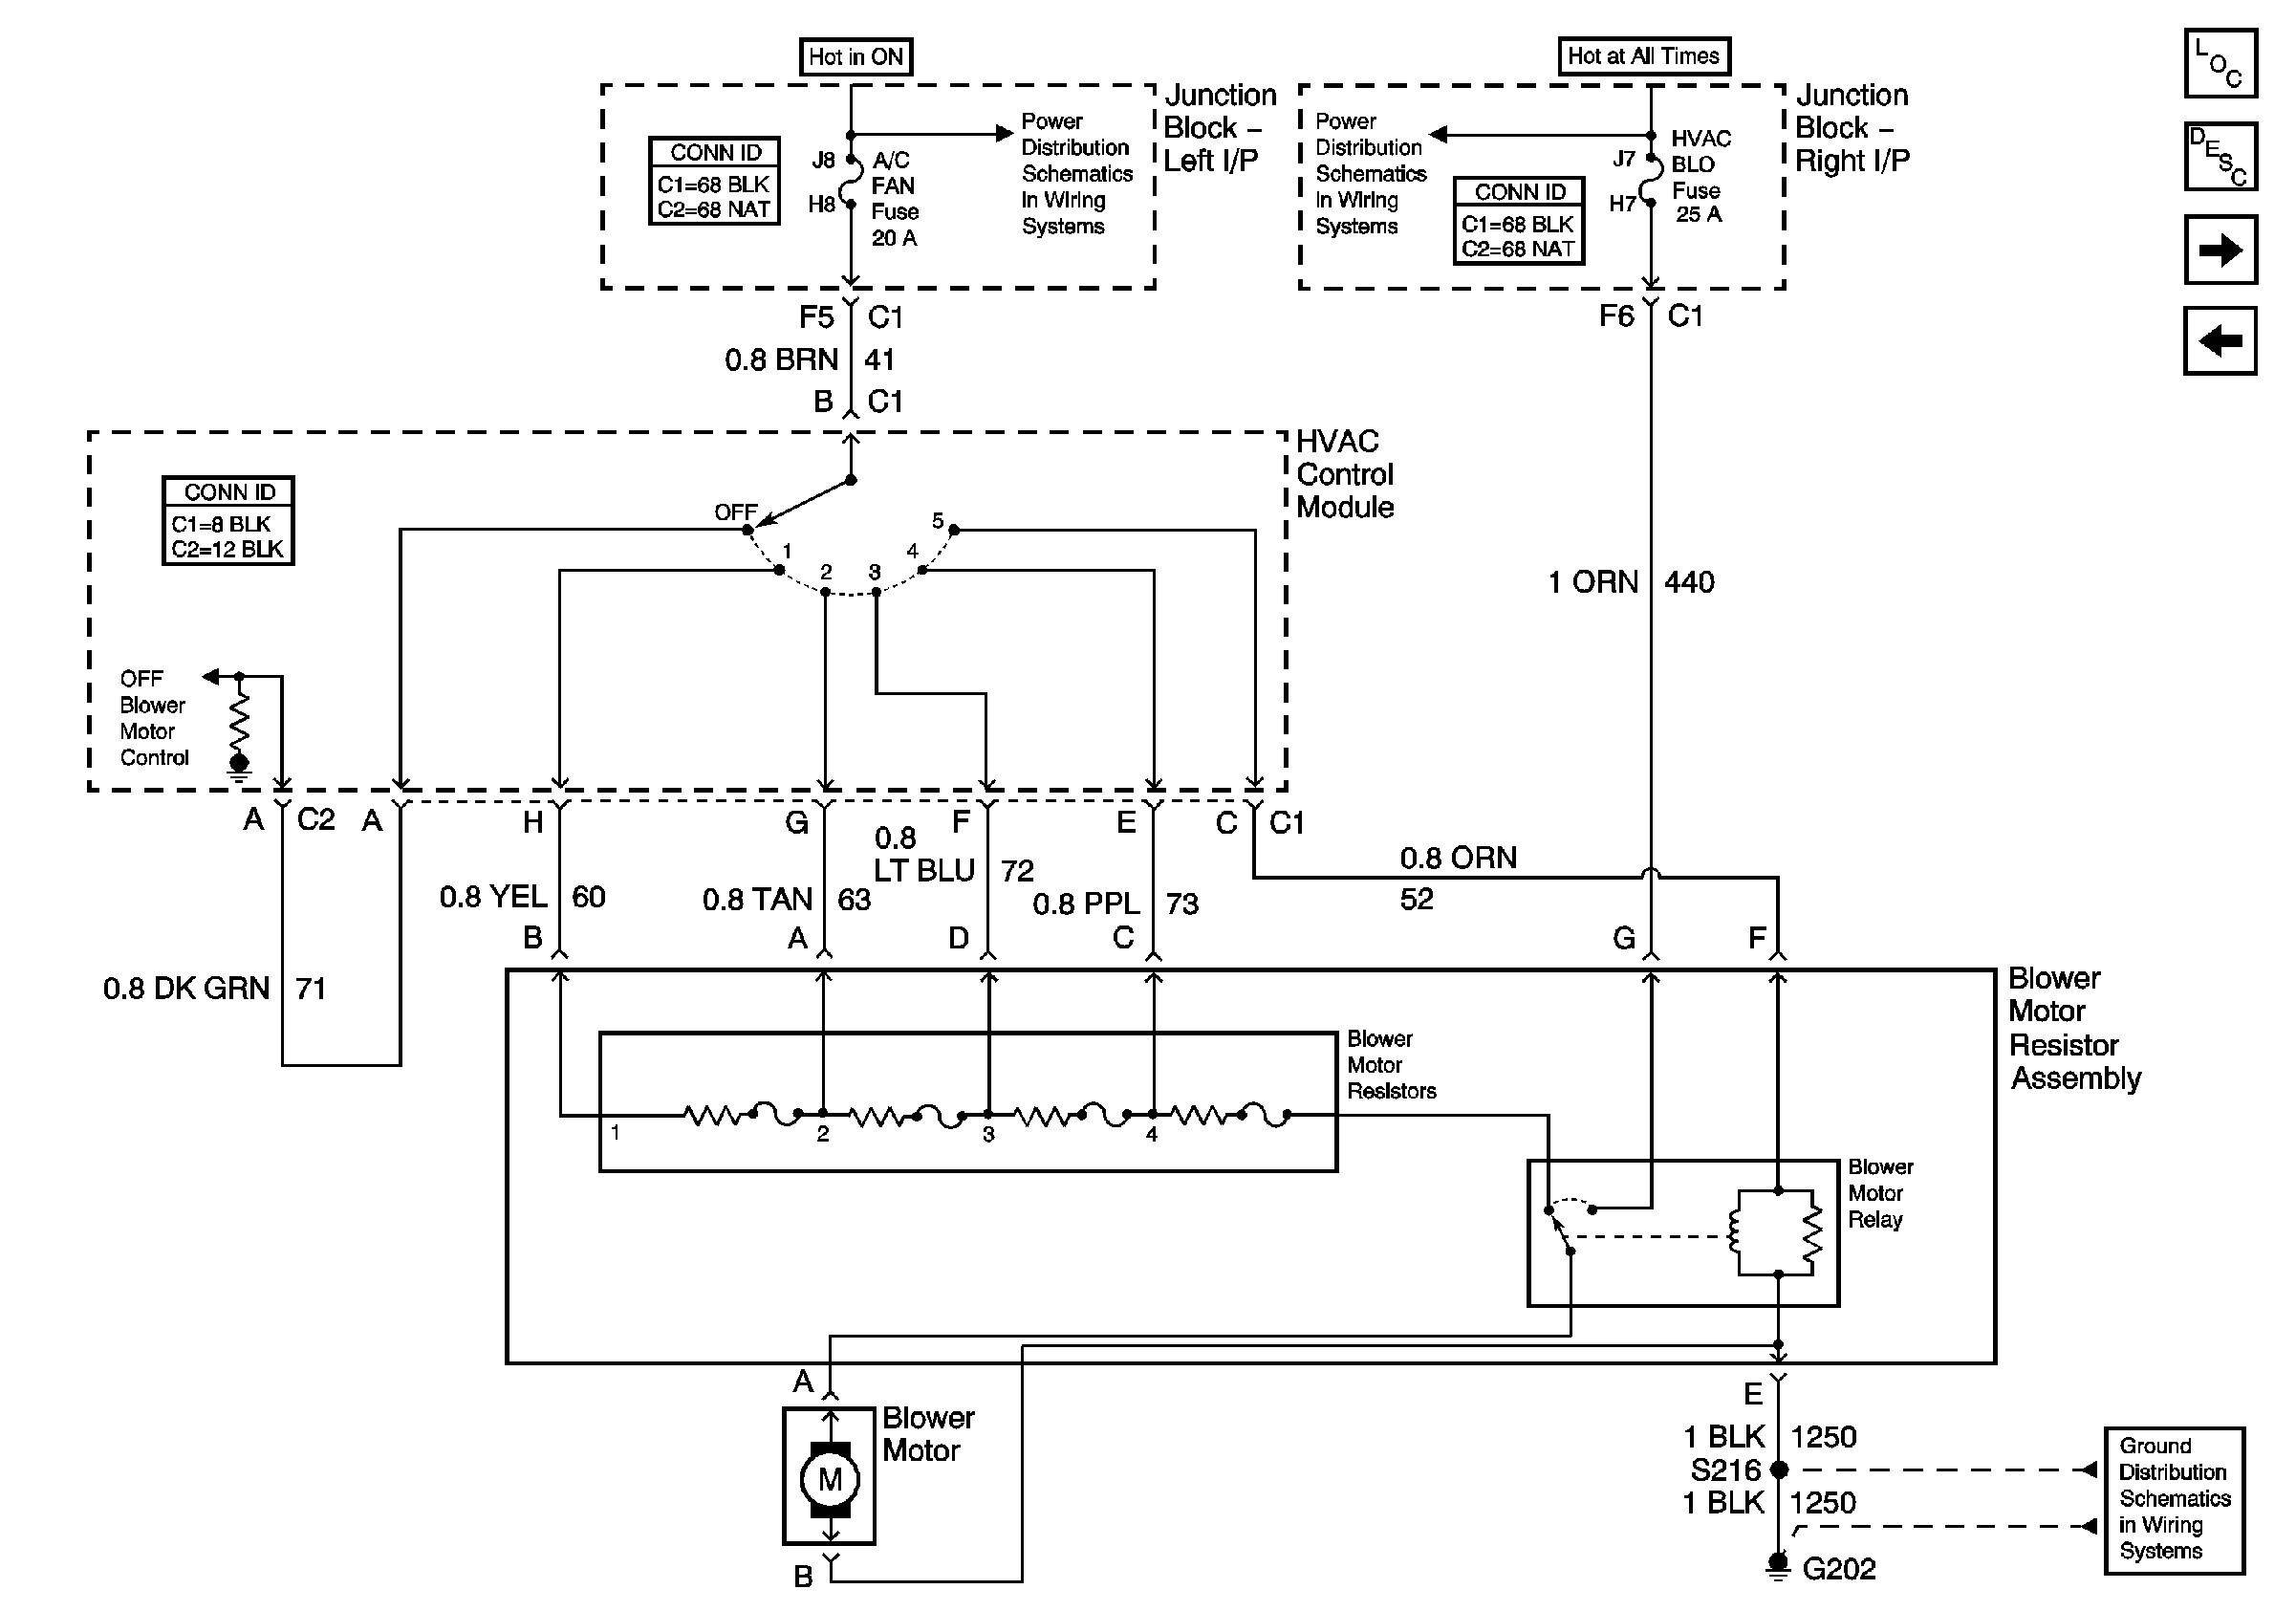 c4500 blower motor wiring diagram library of wiring diagrams u2022 rh sv ti  com Furnace Blower